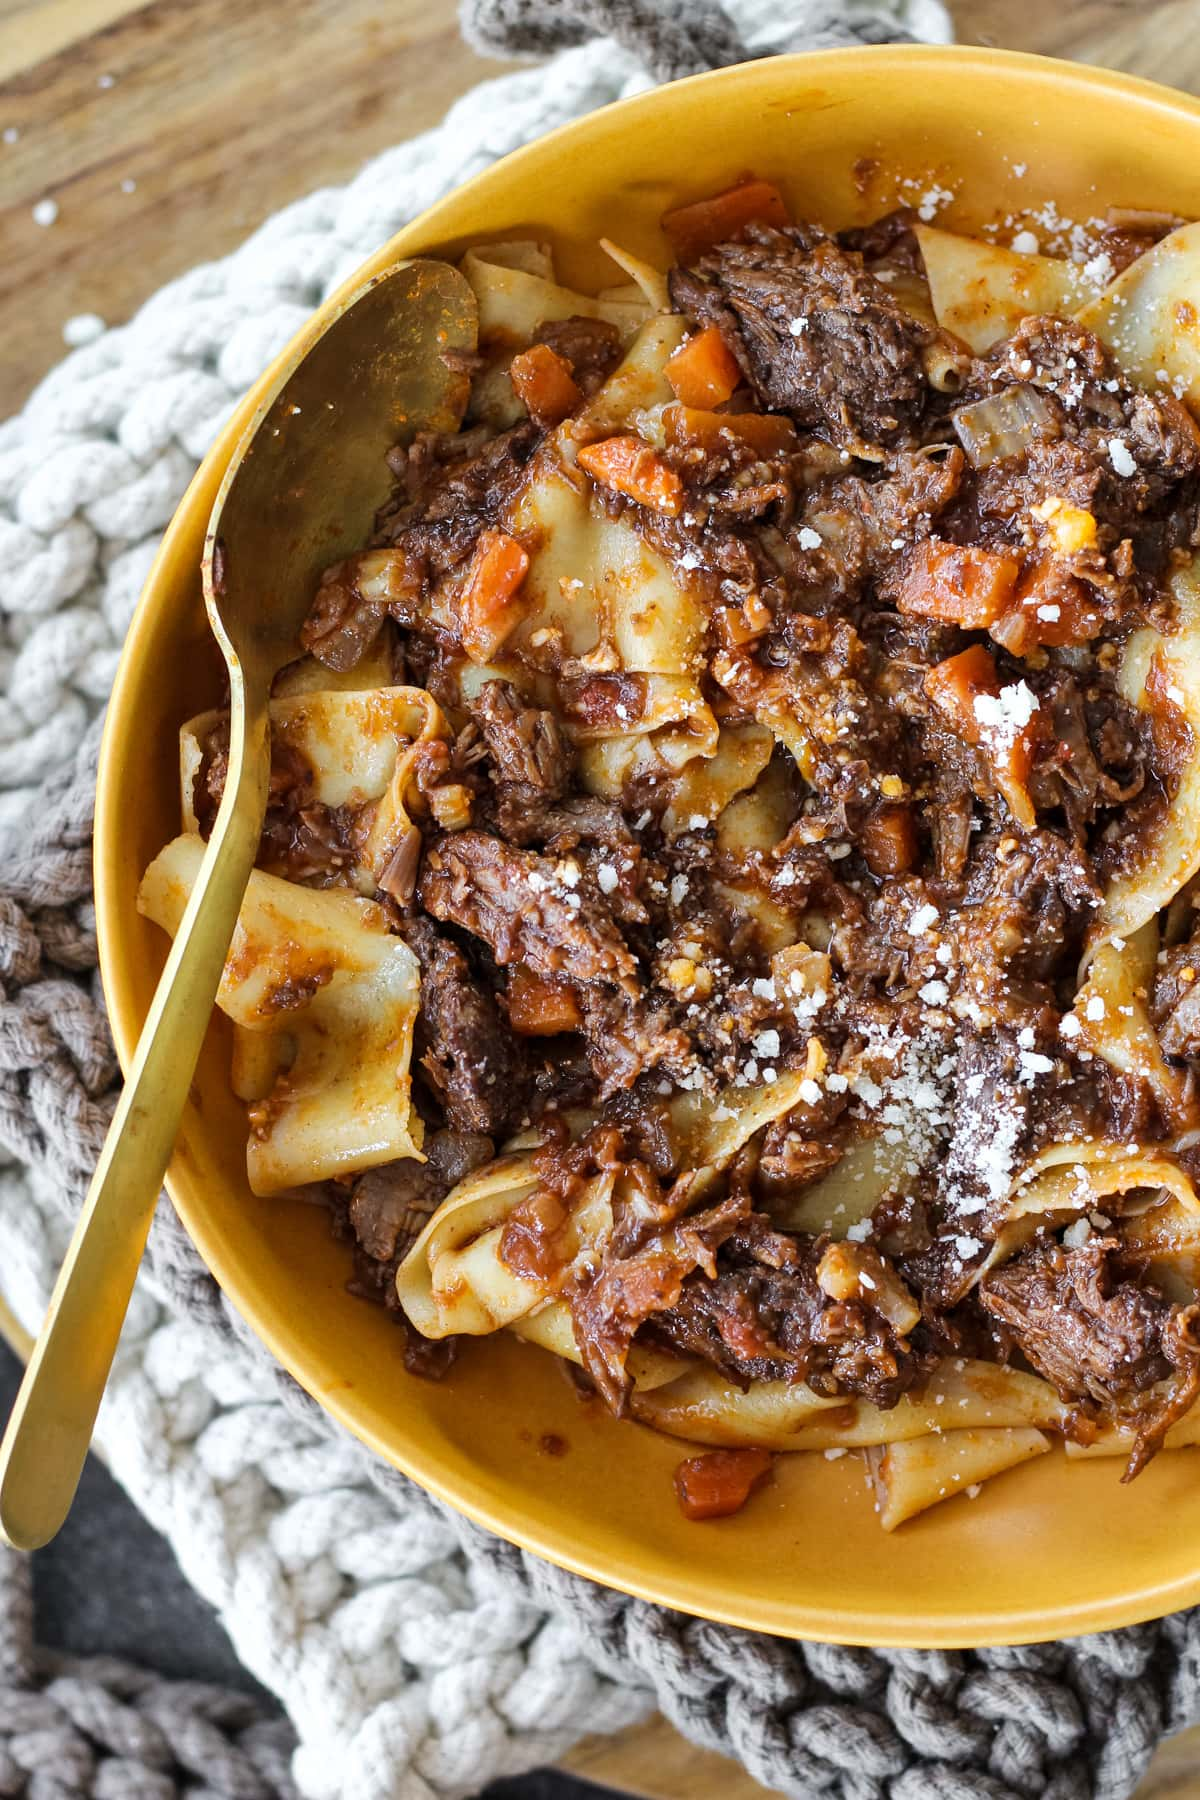 a close up top down view of half of a yellow bowl filled with beef ragu over pappardelle pasta